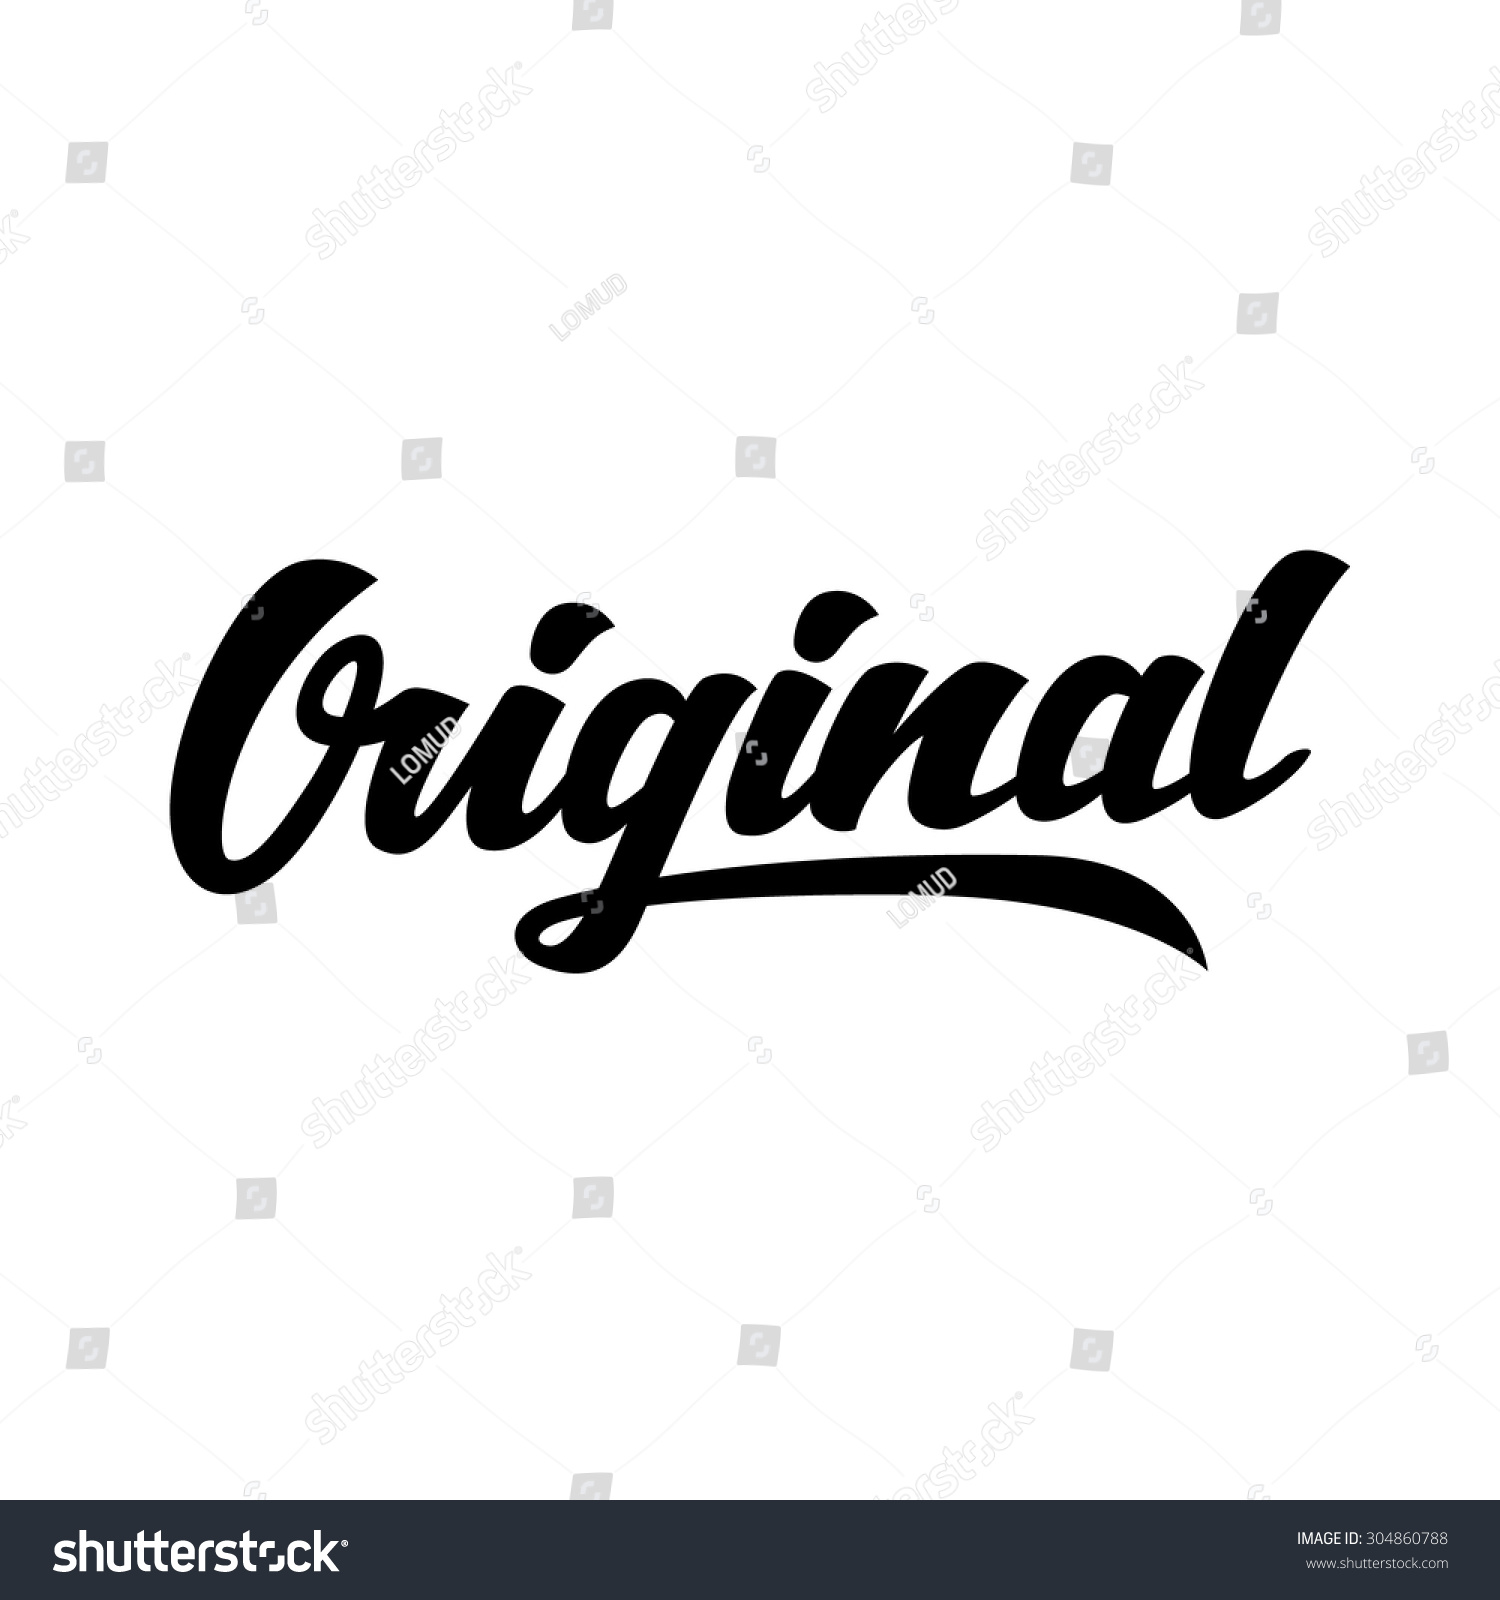 Original word hand lettering handmade vector stock vector Images of calligraphy